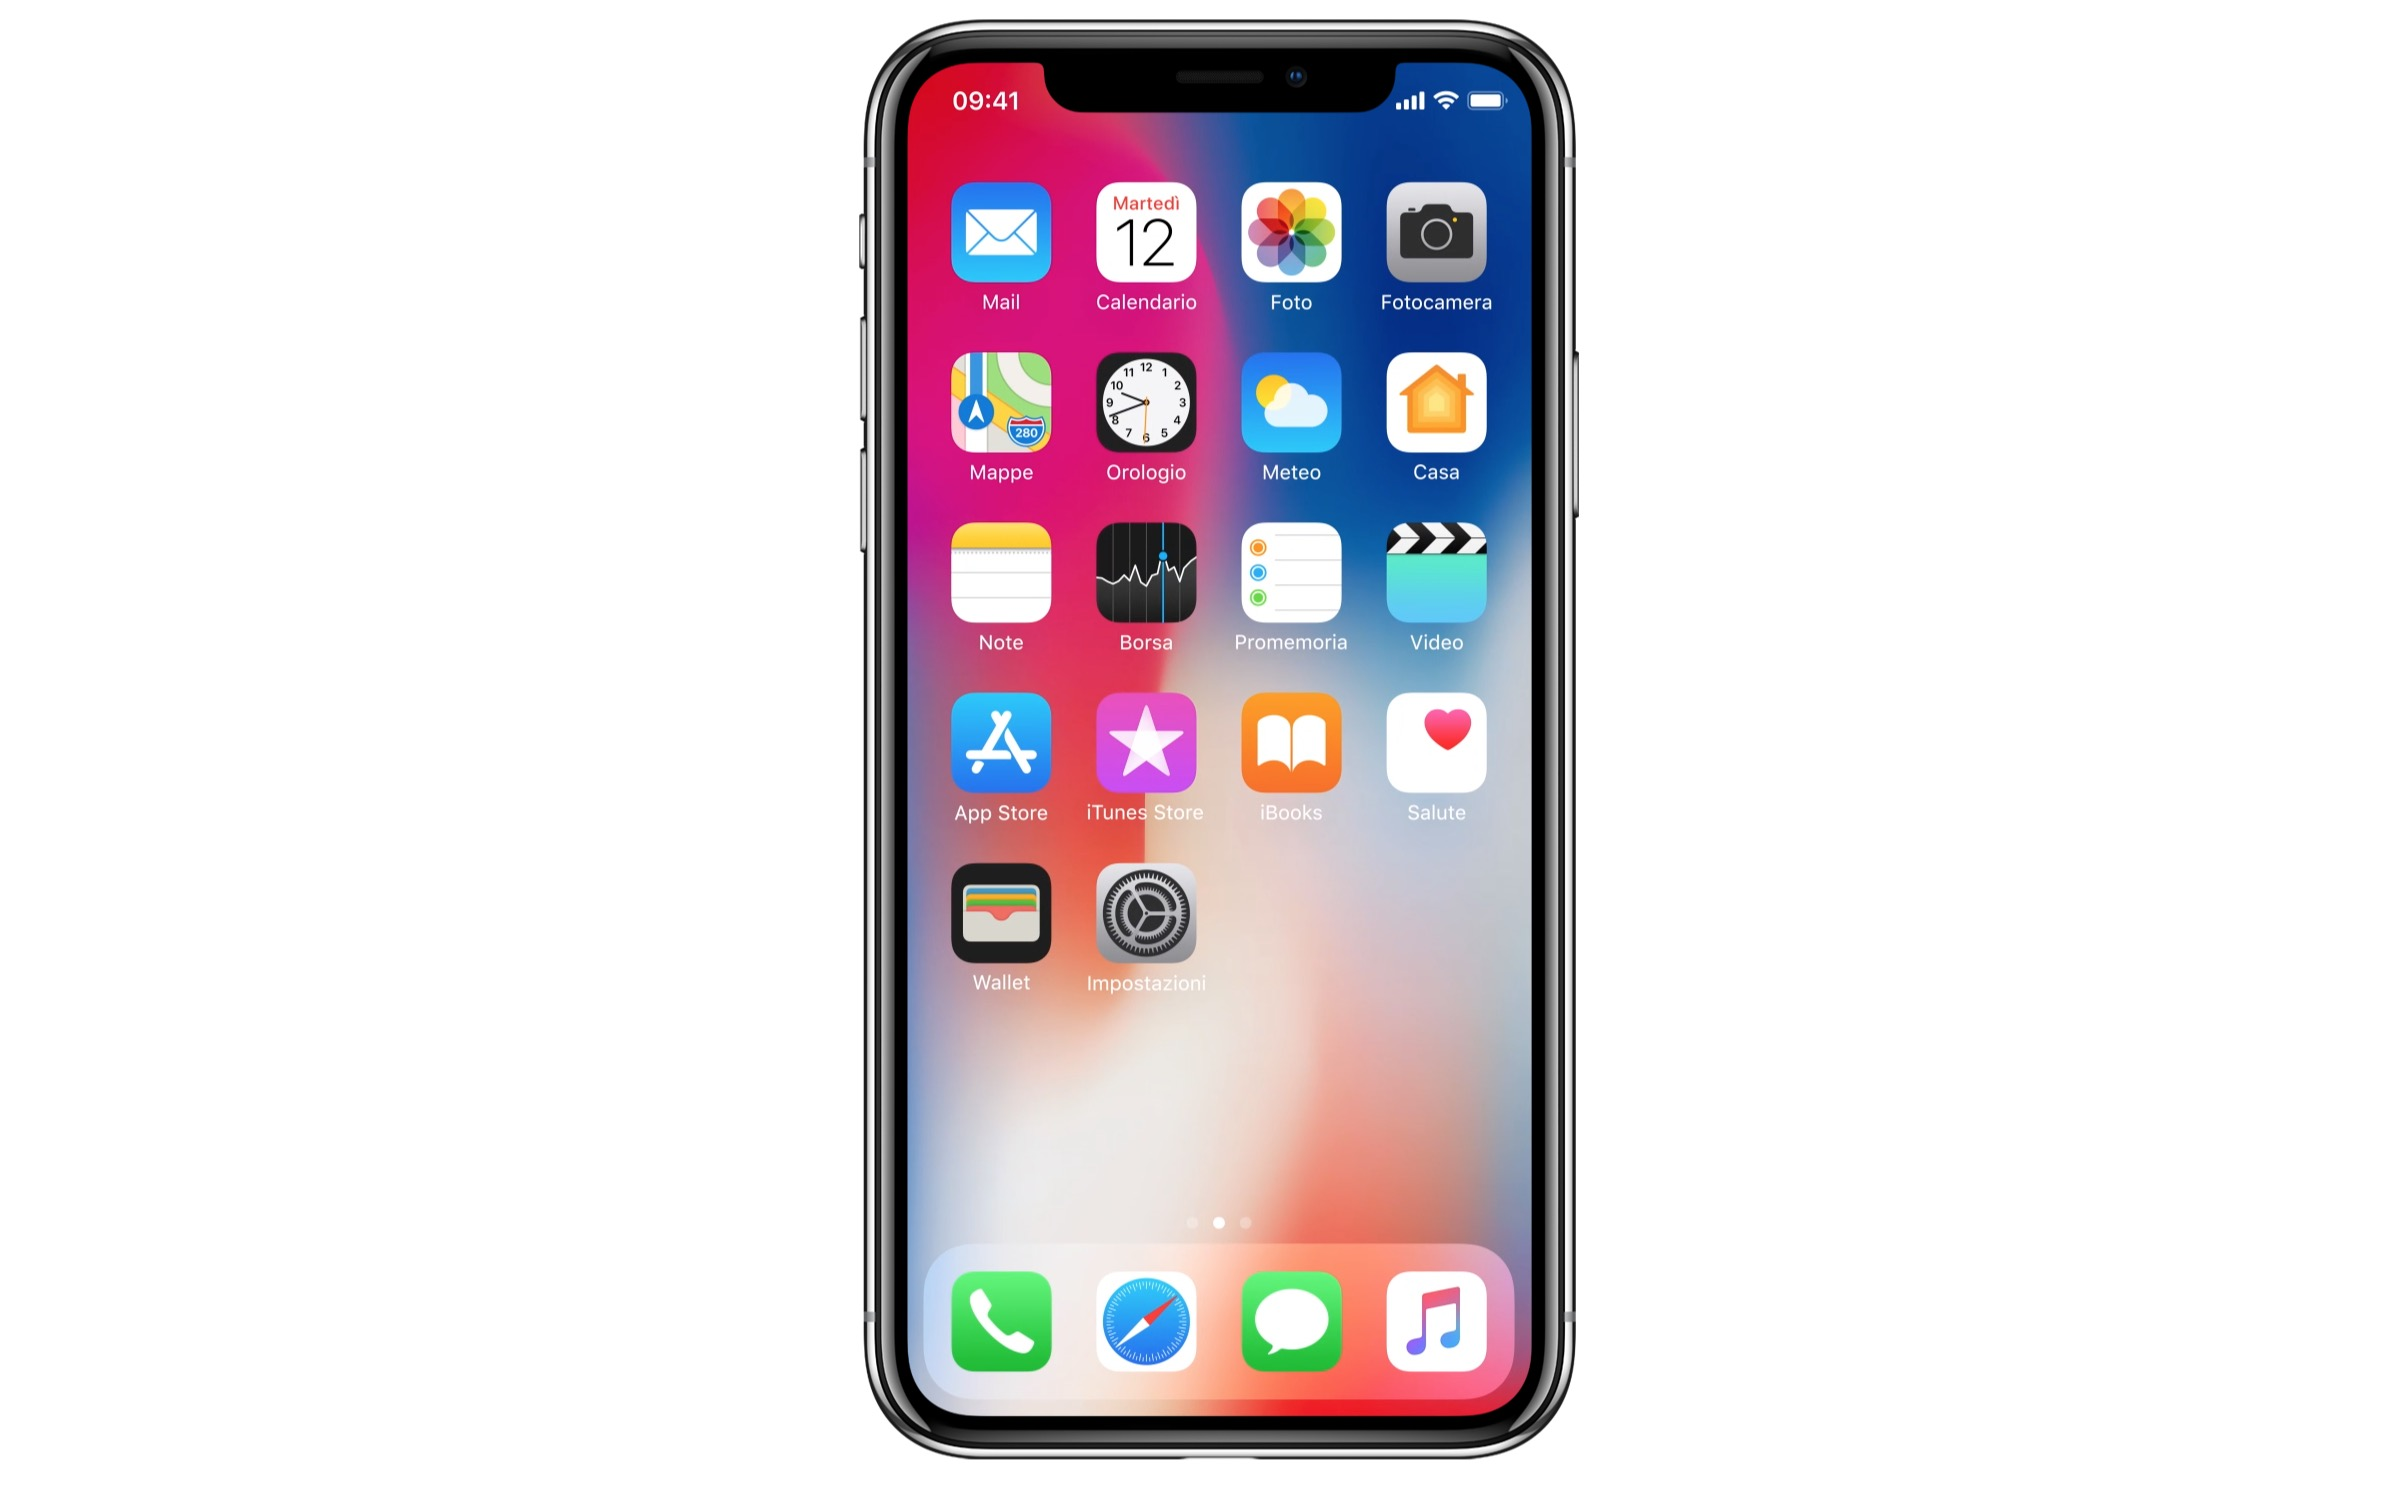 iPhone X specifiche tecniche simili a iPhone 8